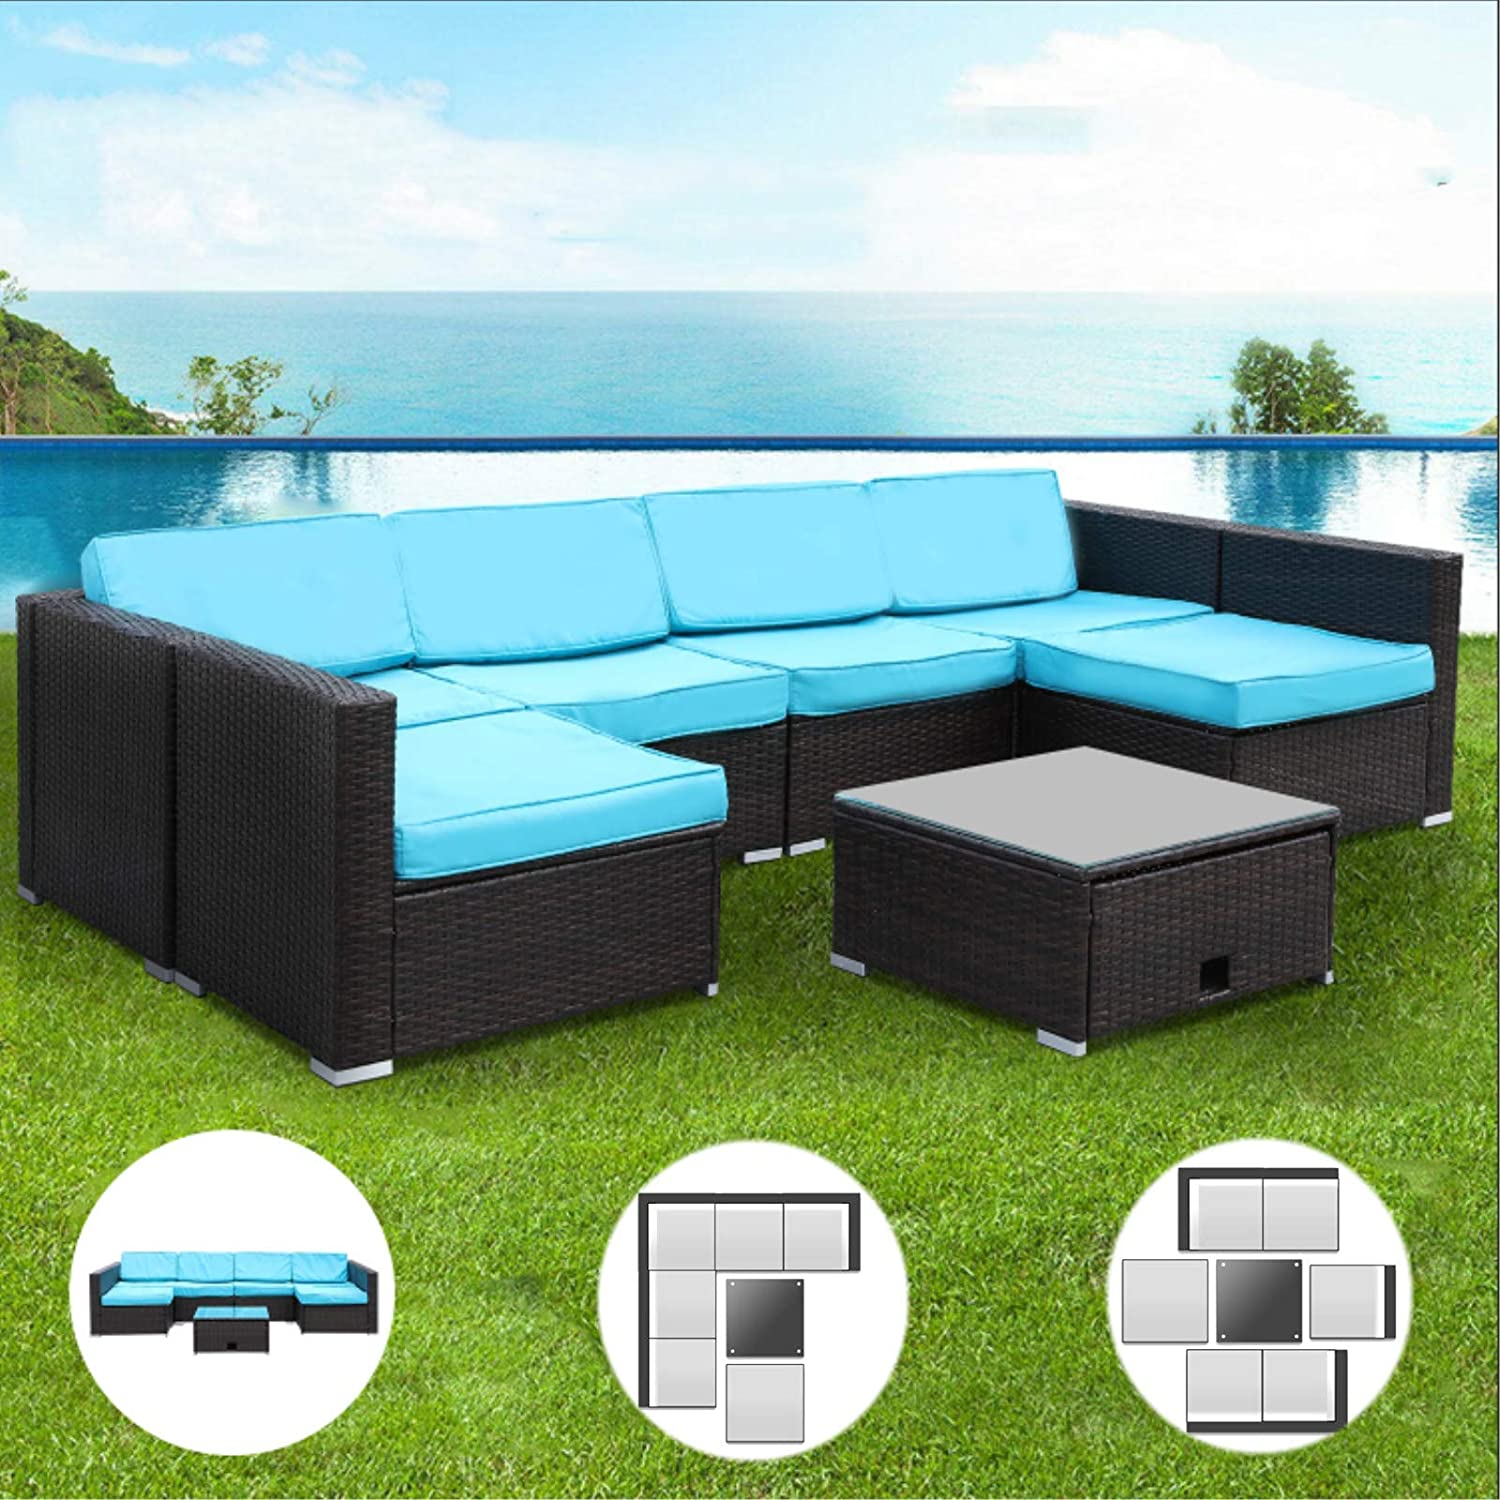 Streakboard 7PCS Patio Furniture Set, All-Weather PE Rattan Sectional Sofa, Outdoor Woven Wicker Chair Conversation Set with Washable Cushion and Tempered-Glass Coffee Table, for Garden, Poolside